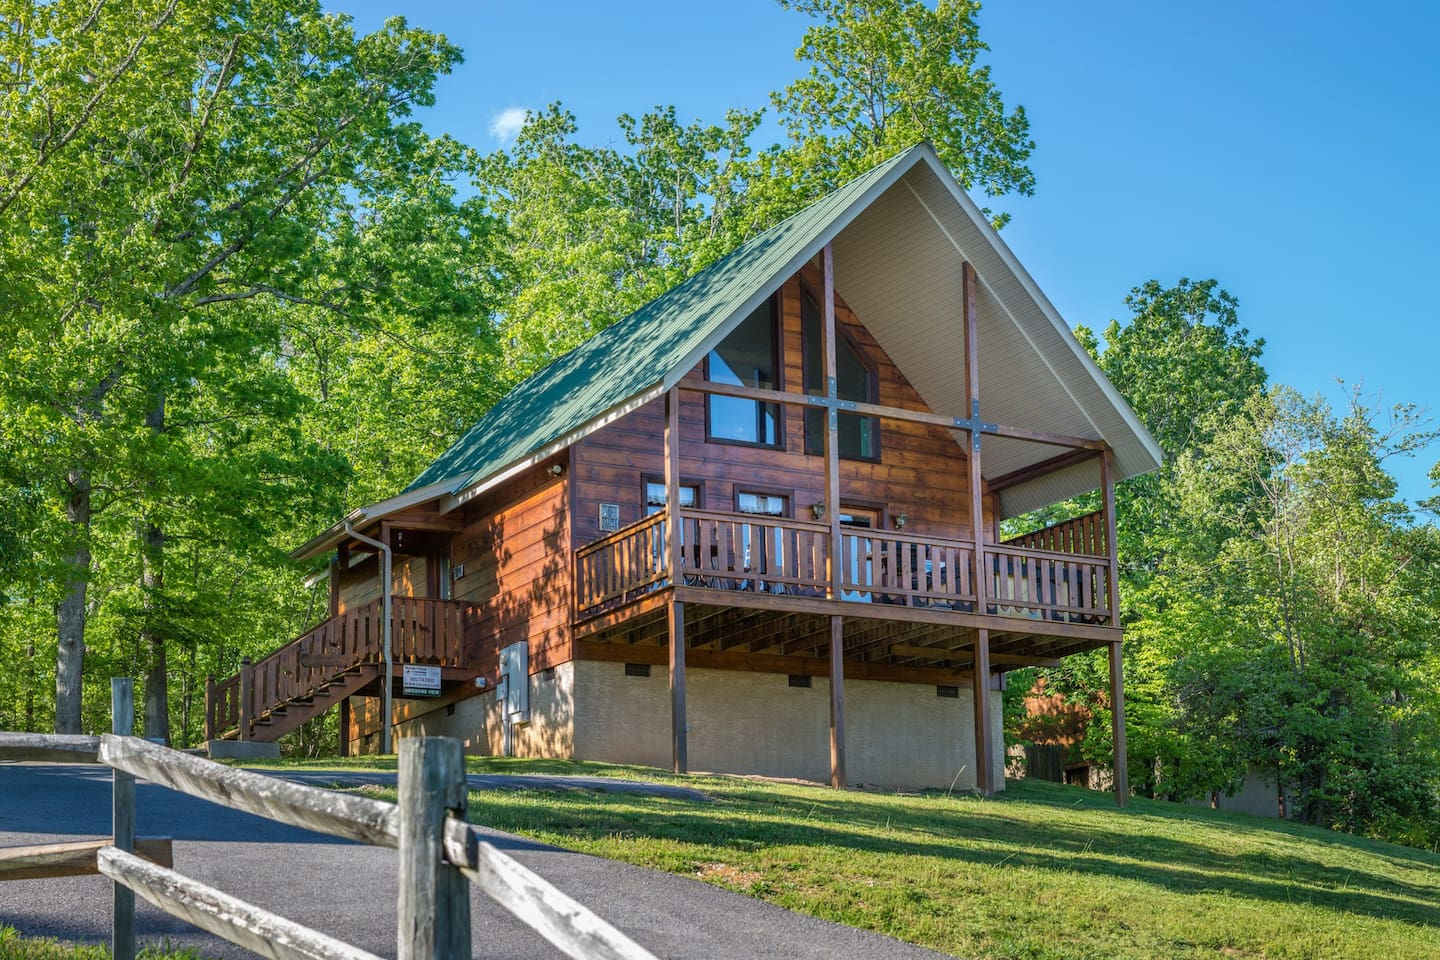 Cosy Dog Friendly Cabin, Tennessee